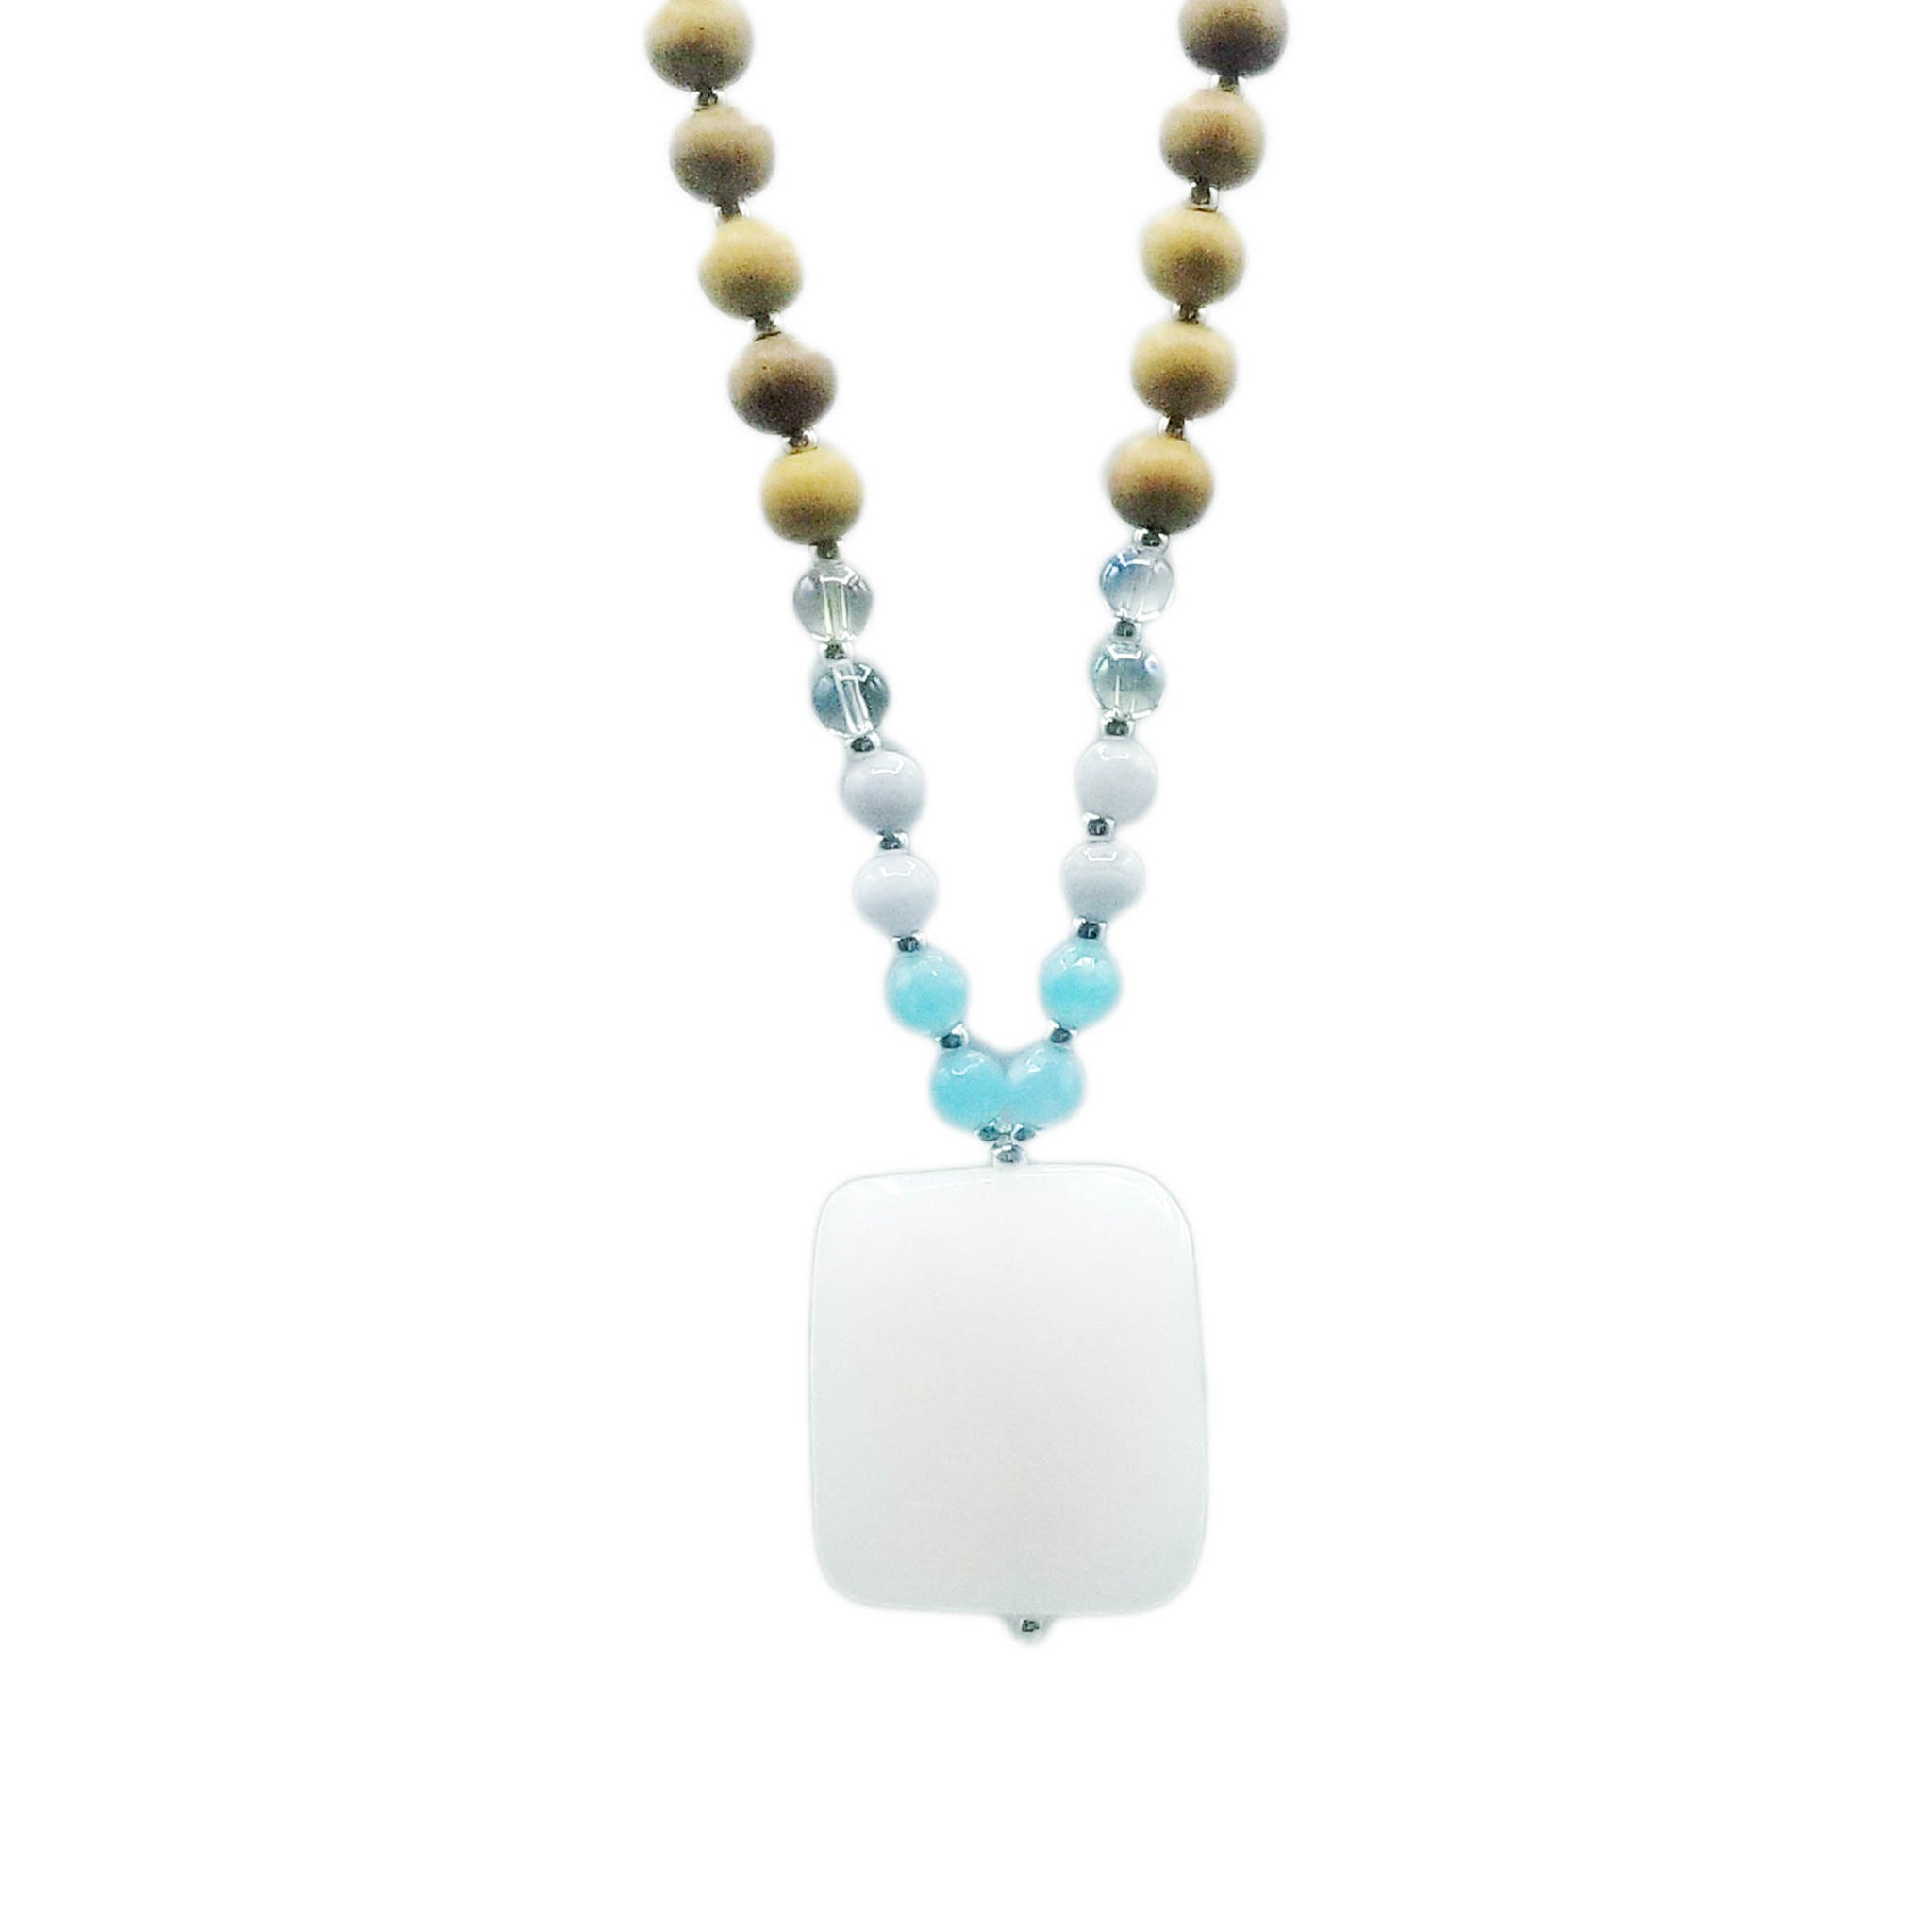 The Air Element Mala Necklace - Mala Beads Meditation Accessories and Yoga Jewelry by Tiny Devotions